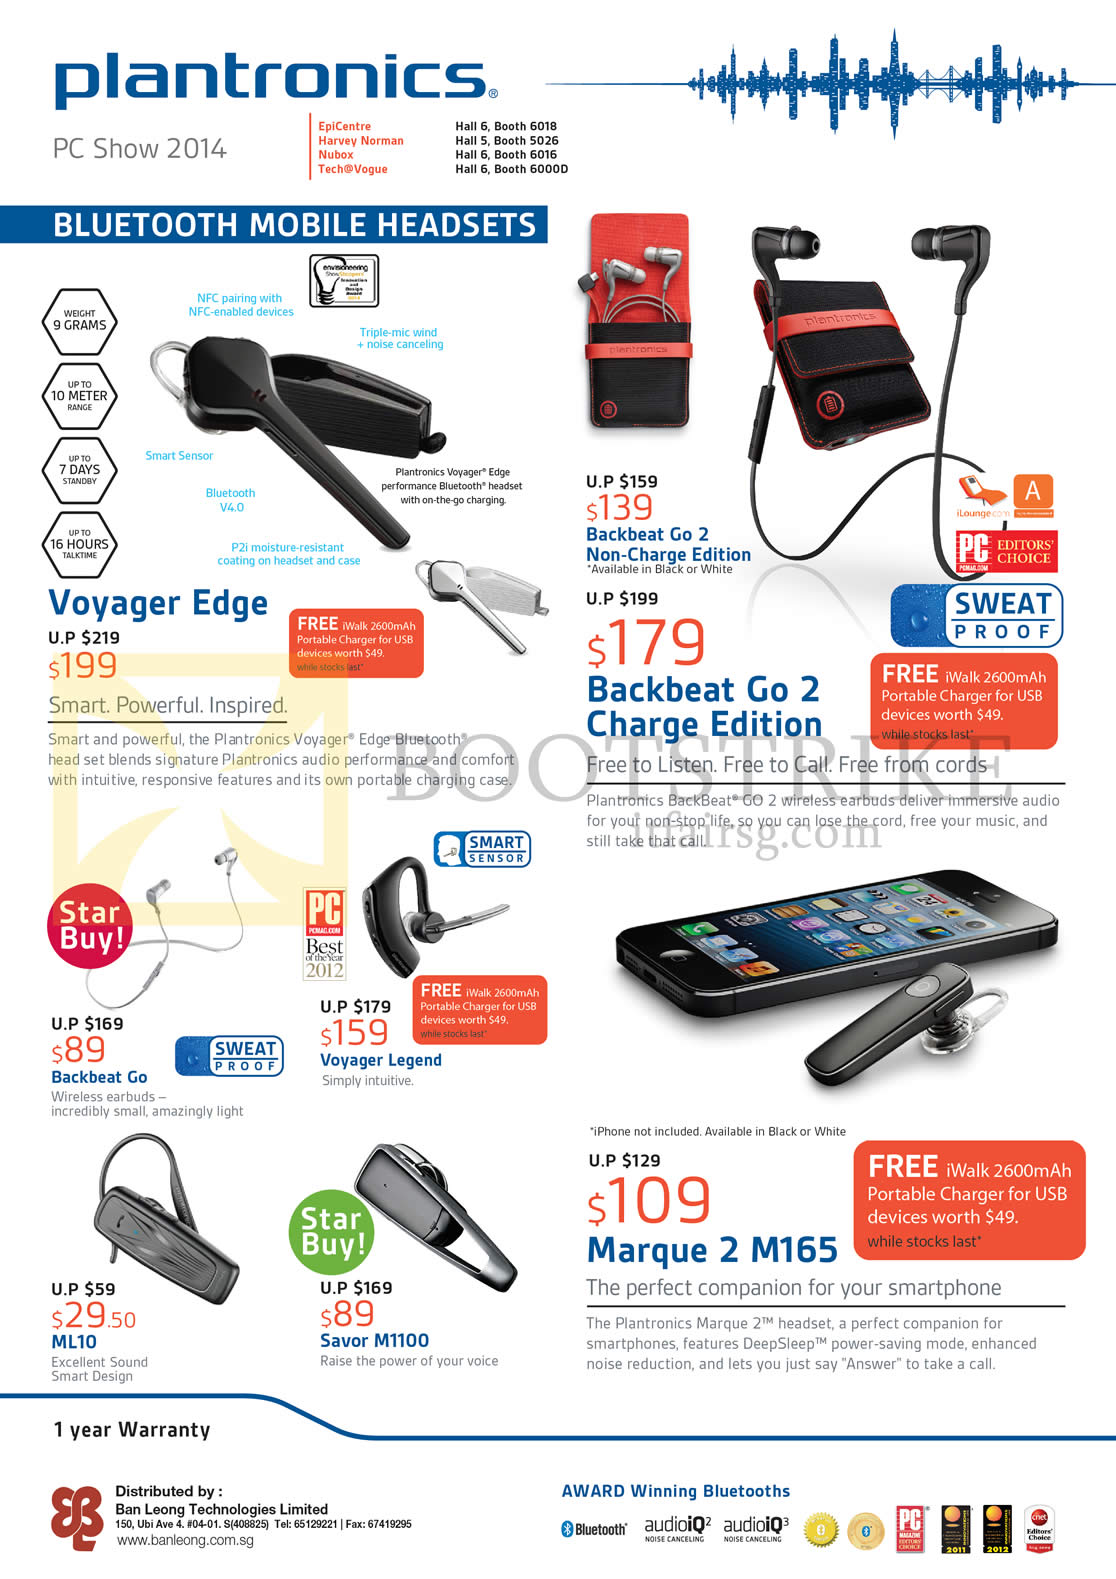 PC SHOW 2014 price list image brochure of Plantronics Bluetooth Headsets, Voyager Edge, Backbeat Go 2 Charge Edition, Marque 2 M165, Backbeat Go, Voyager Legend, ML10, Savor M1100